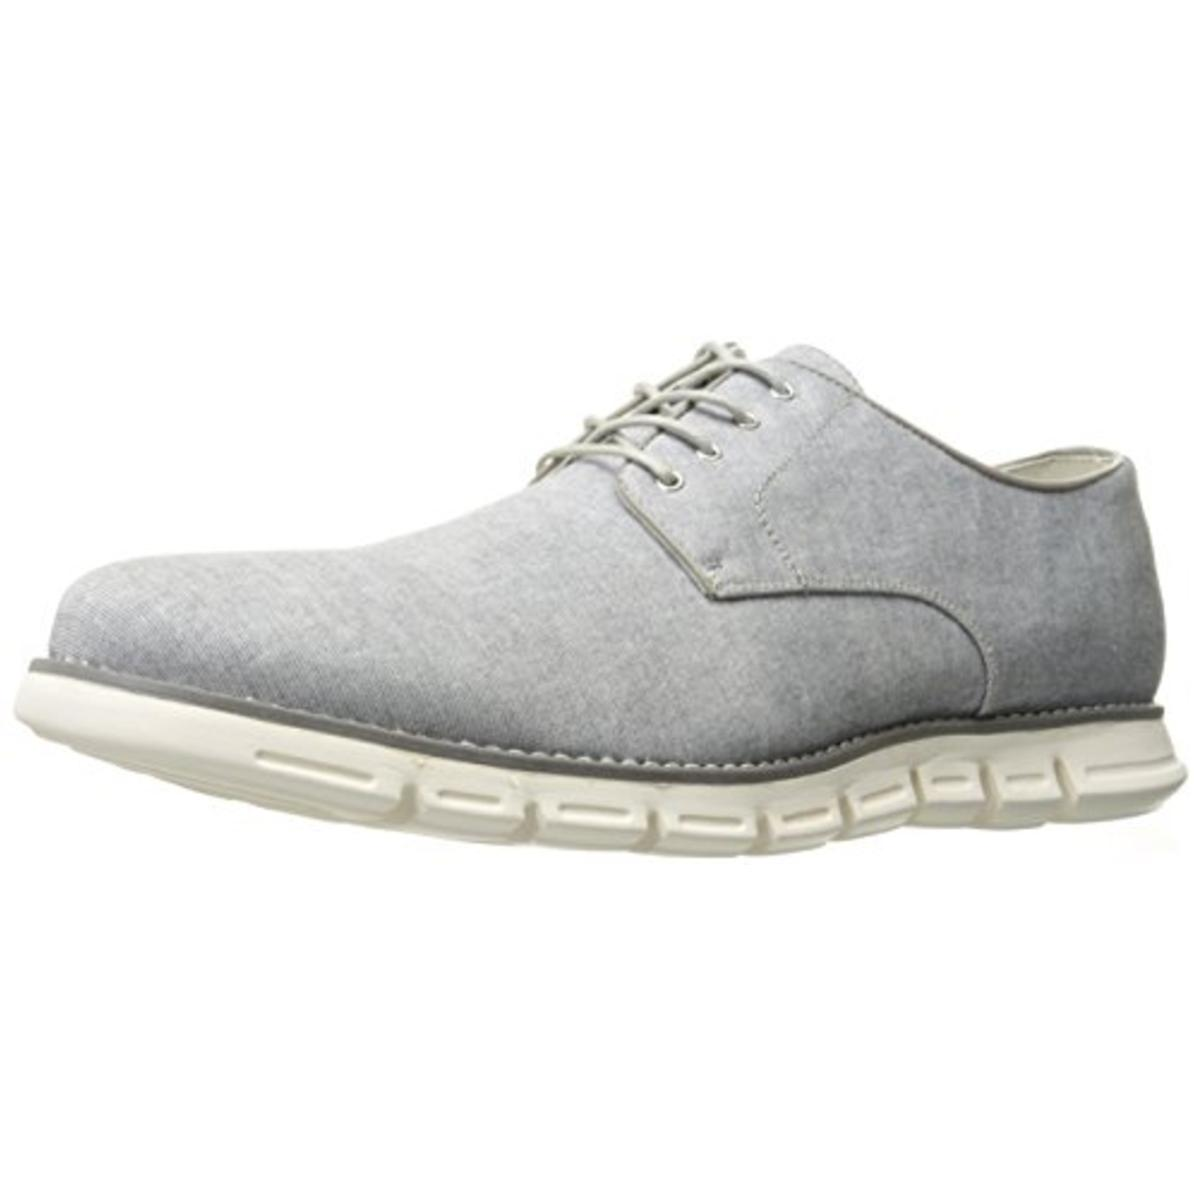 GBX Mens Haste Textured Plain Toe Oxfords by GBX